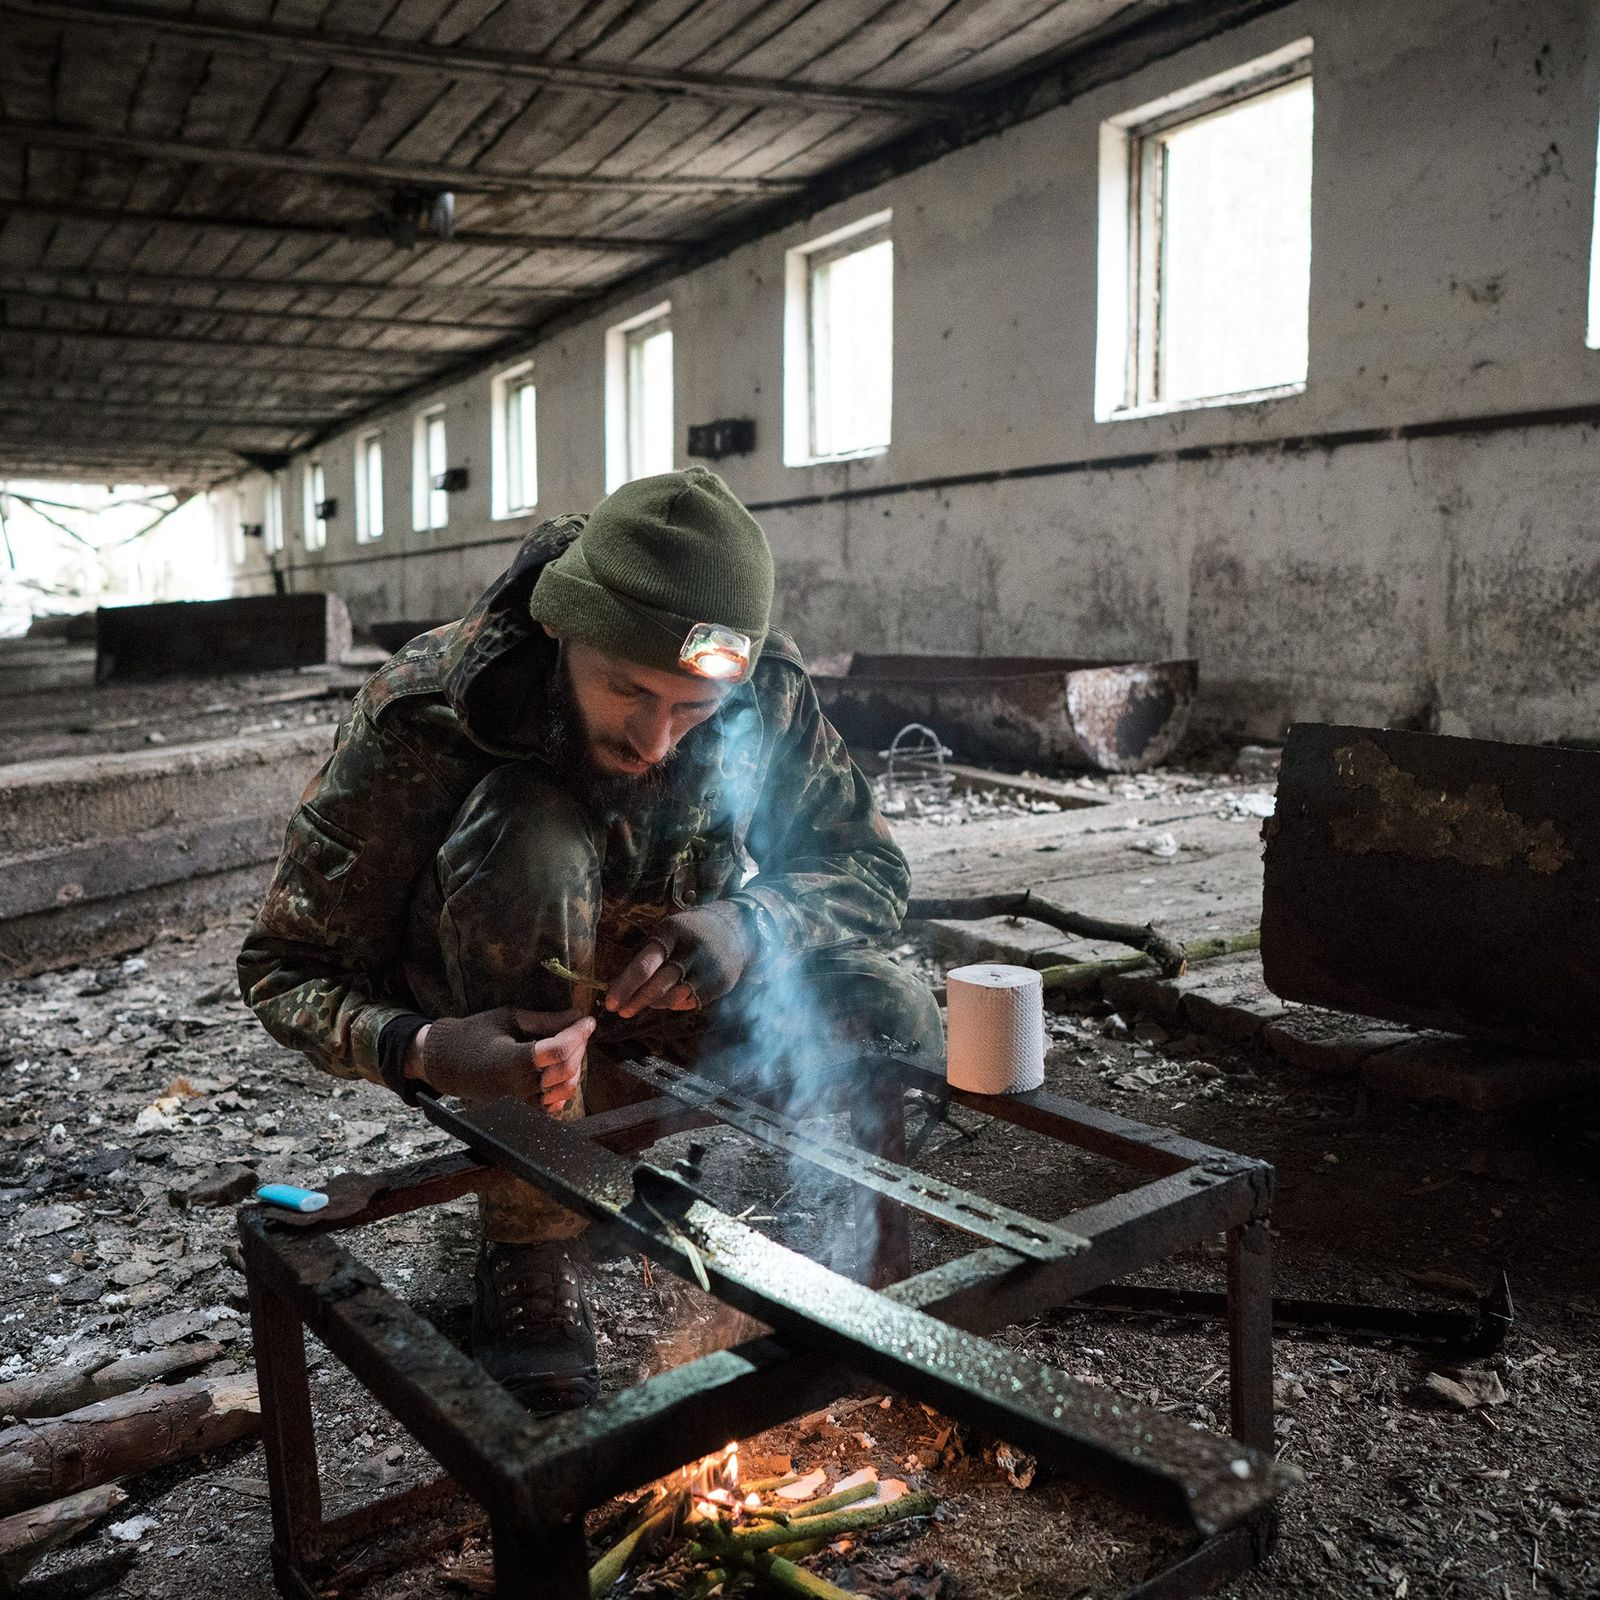 Knyazev lights a fire in an abadoned pig shed. He has made more than 50 trips ...